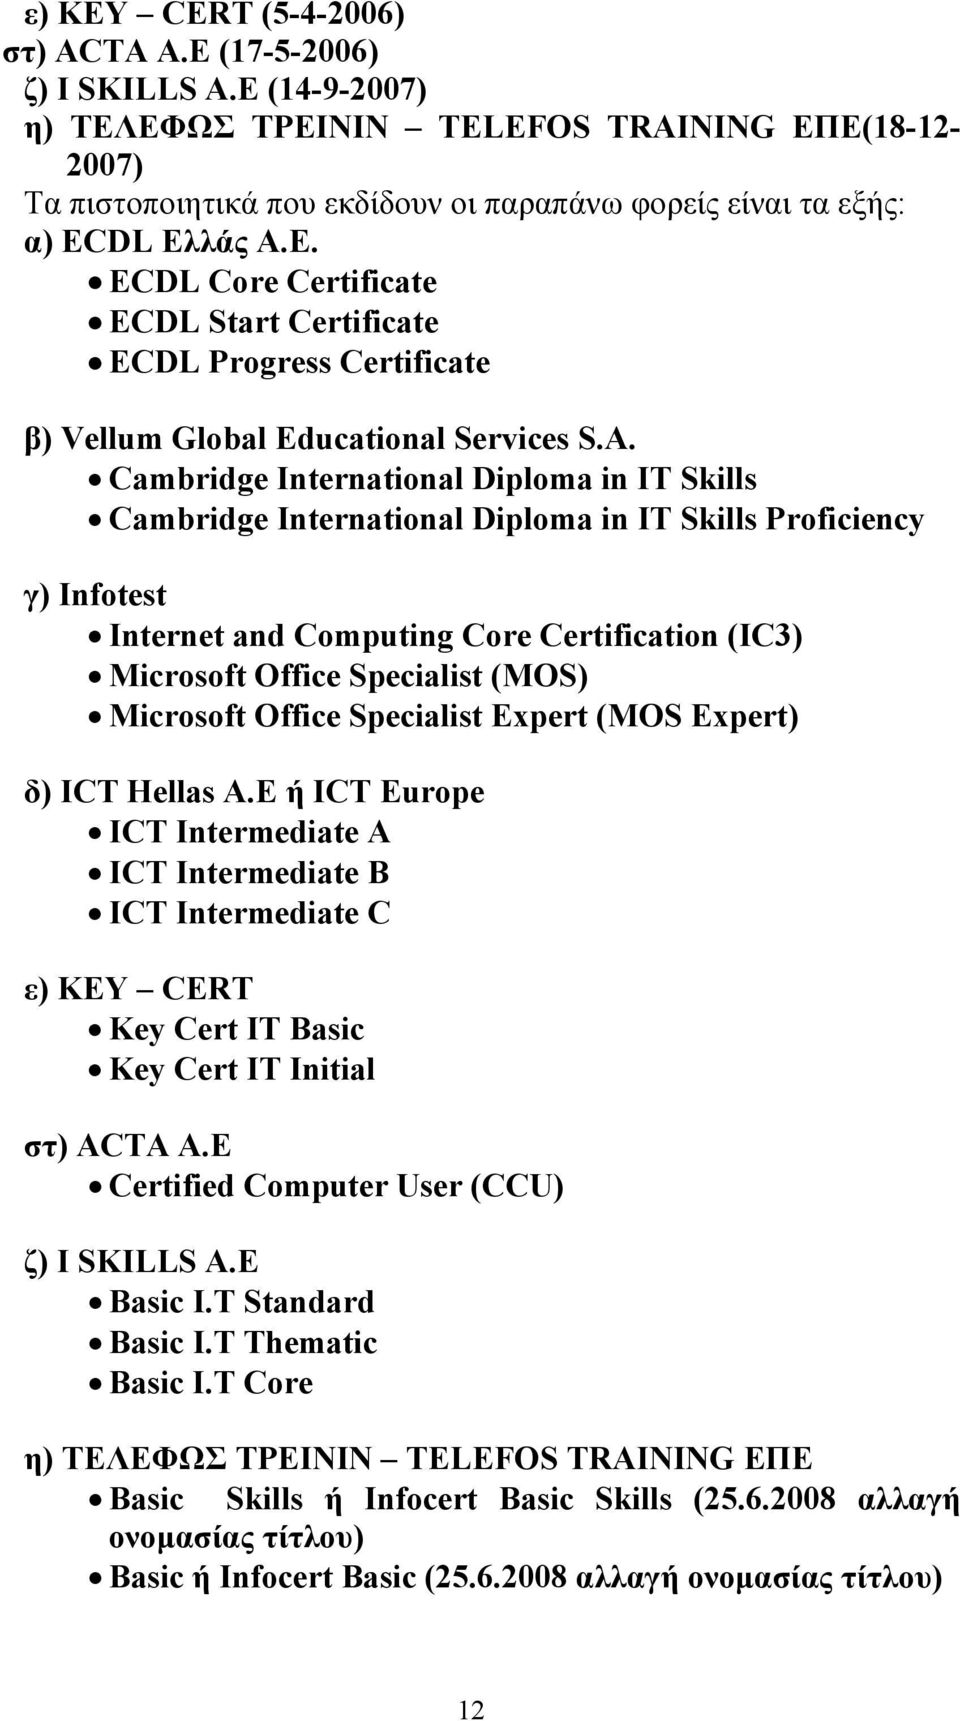 A. Cambridge International Diploma in IT Skills Cambridge International Diploma in IT Skills Proficiency γ) Infotest Internet and Computing Core Certification (IC3) Microsoft Office Specialist (MOS)